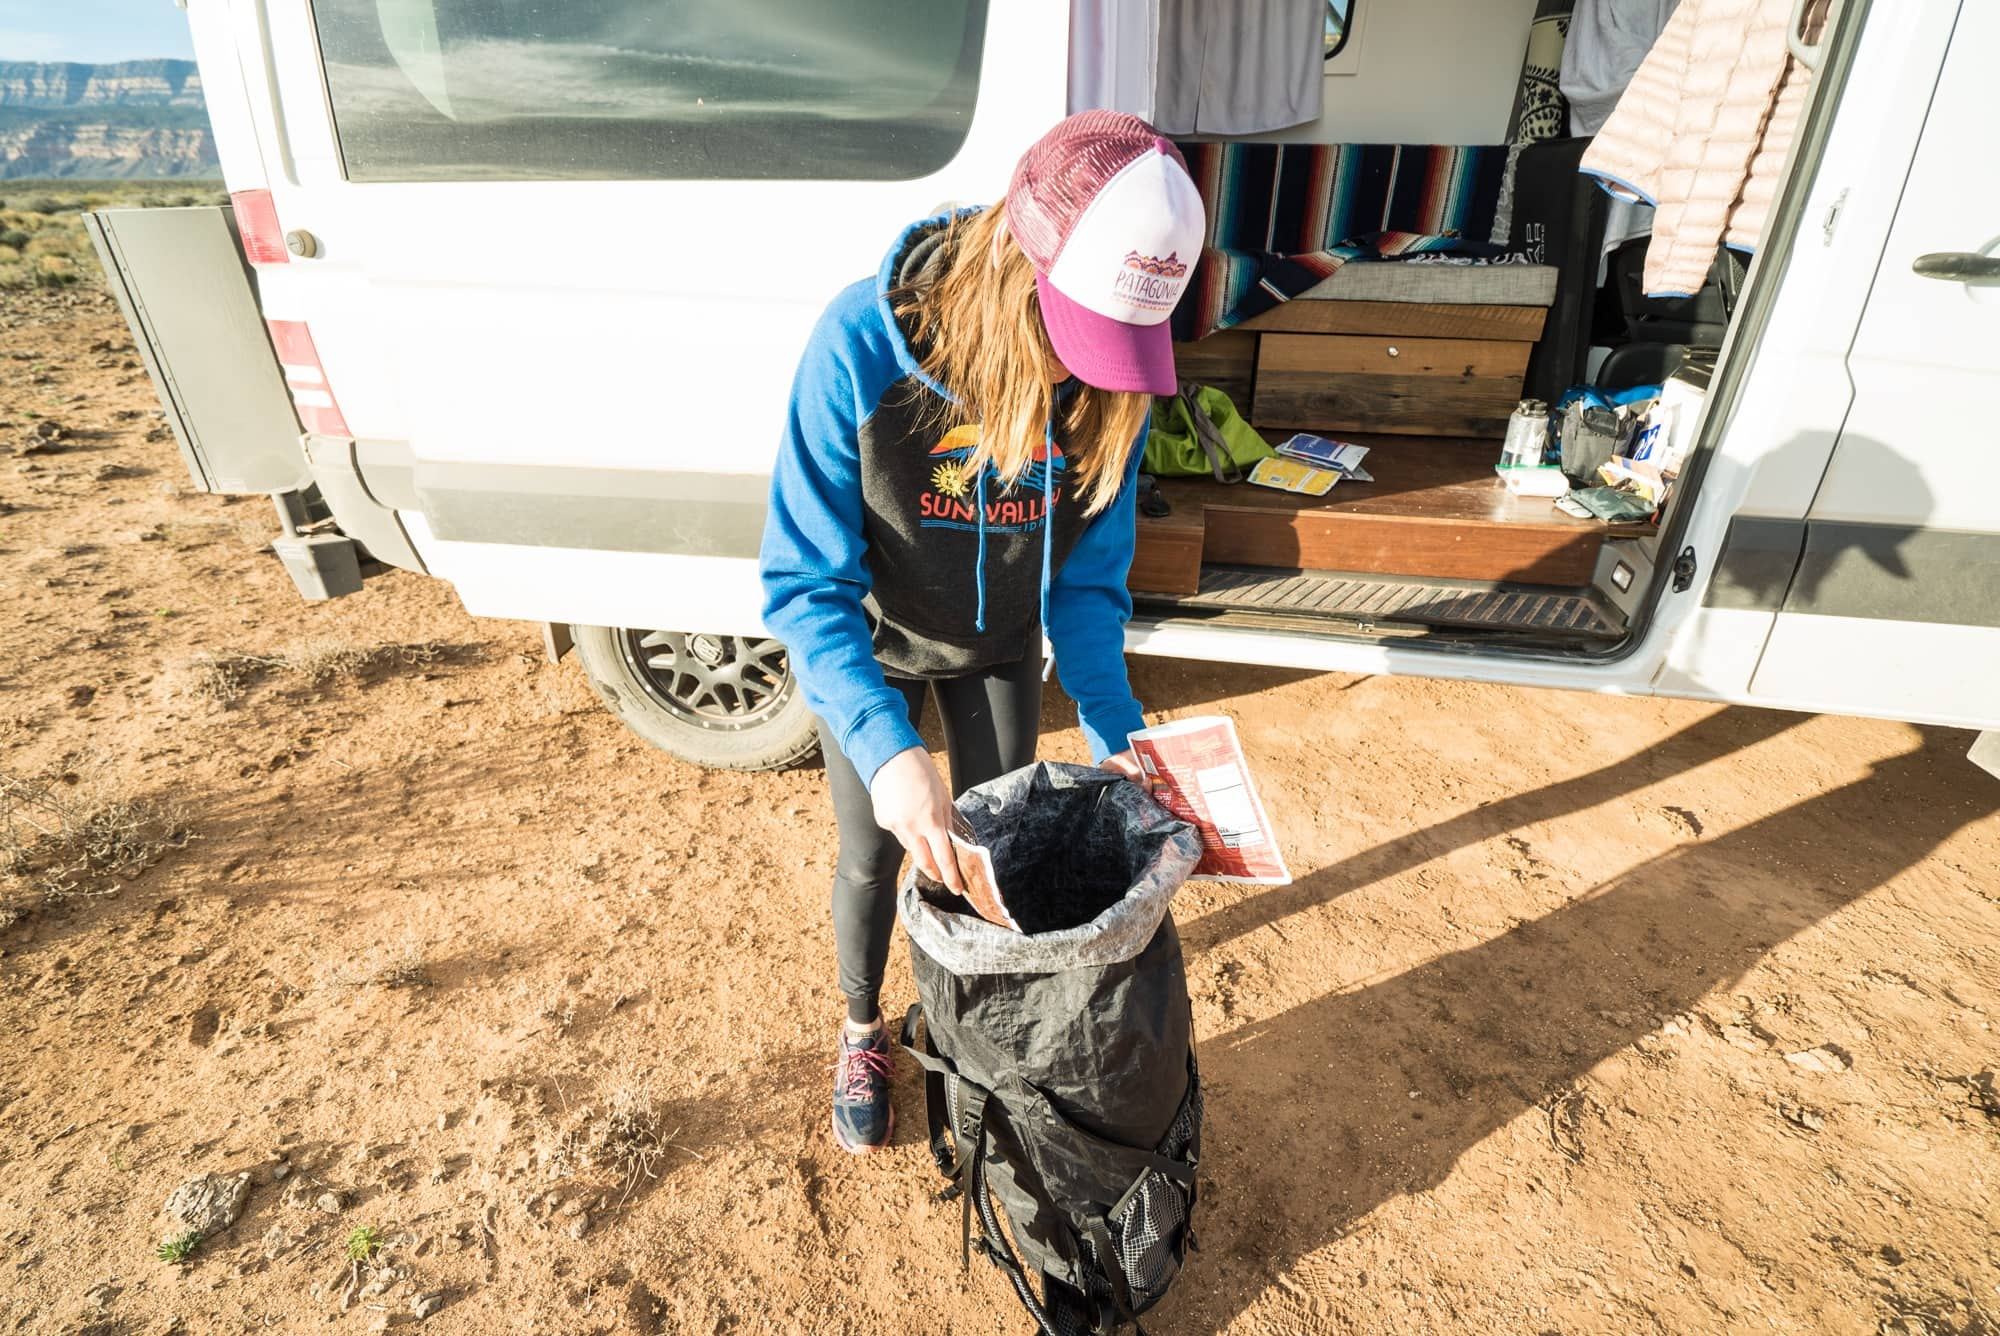 Kristen packing her backpacking pack // Learn how to pack a backpacking pack for maximum comfort and organization with these tips for fitting your gear and balancing the load.